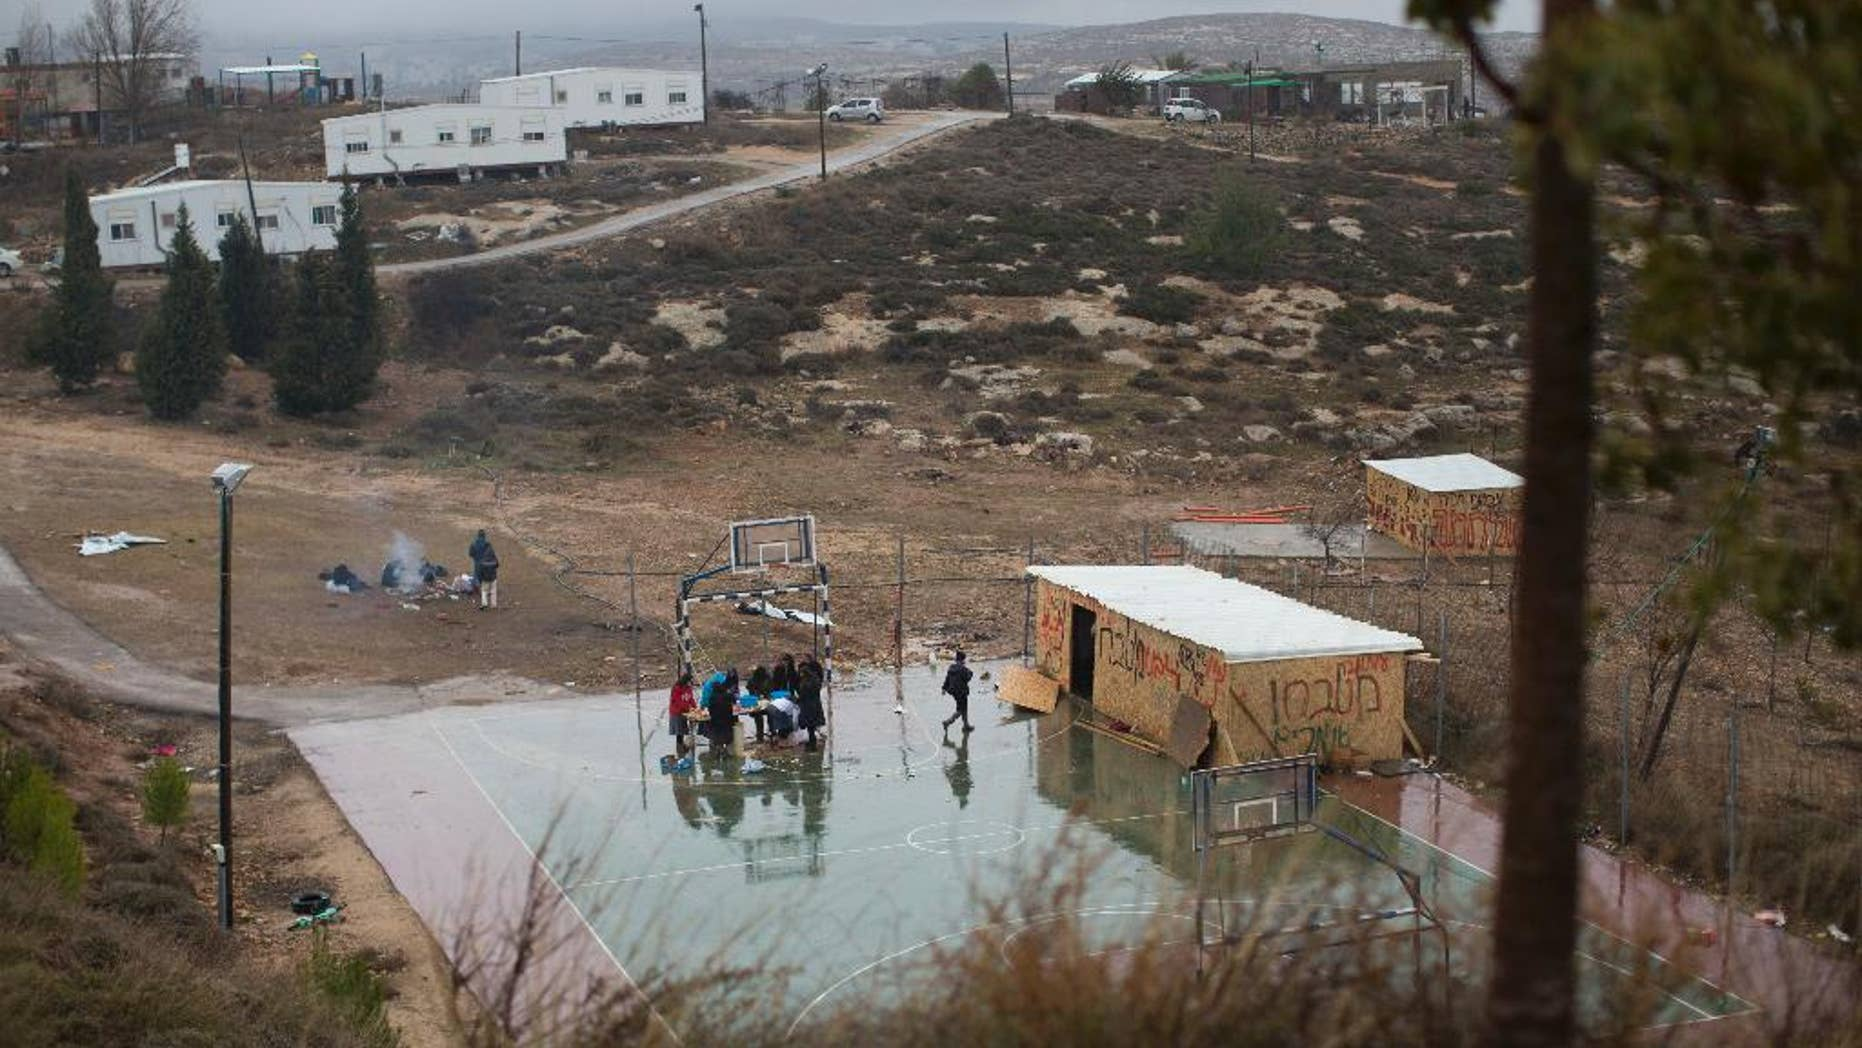 File - In this Sunday, Dec. 18, 2016 file photo, Jewish settlers cook food in a basketball field in Amona, an unauthorized Israeli outpost in the West Bank, east of the Palestinian town of Ramallah. A group of Palestinian landowners is set to reclaim the property they watched stripped from them two decades ago, hoping to finally put to rest a bitter, years-long battle that thrust them into a protracted legal saga and a political crisis that threatened to tear apart Israel's governing coalition. (AP Photo/Oded Balilty, File)